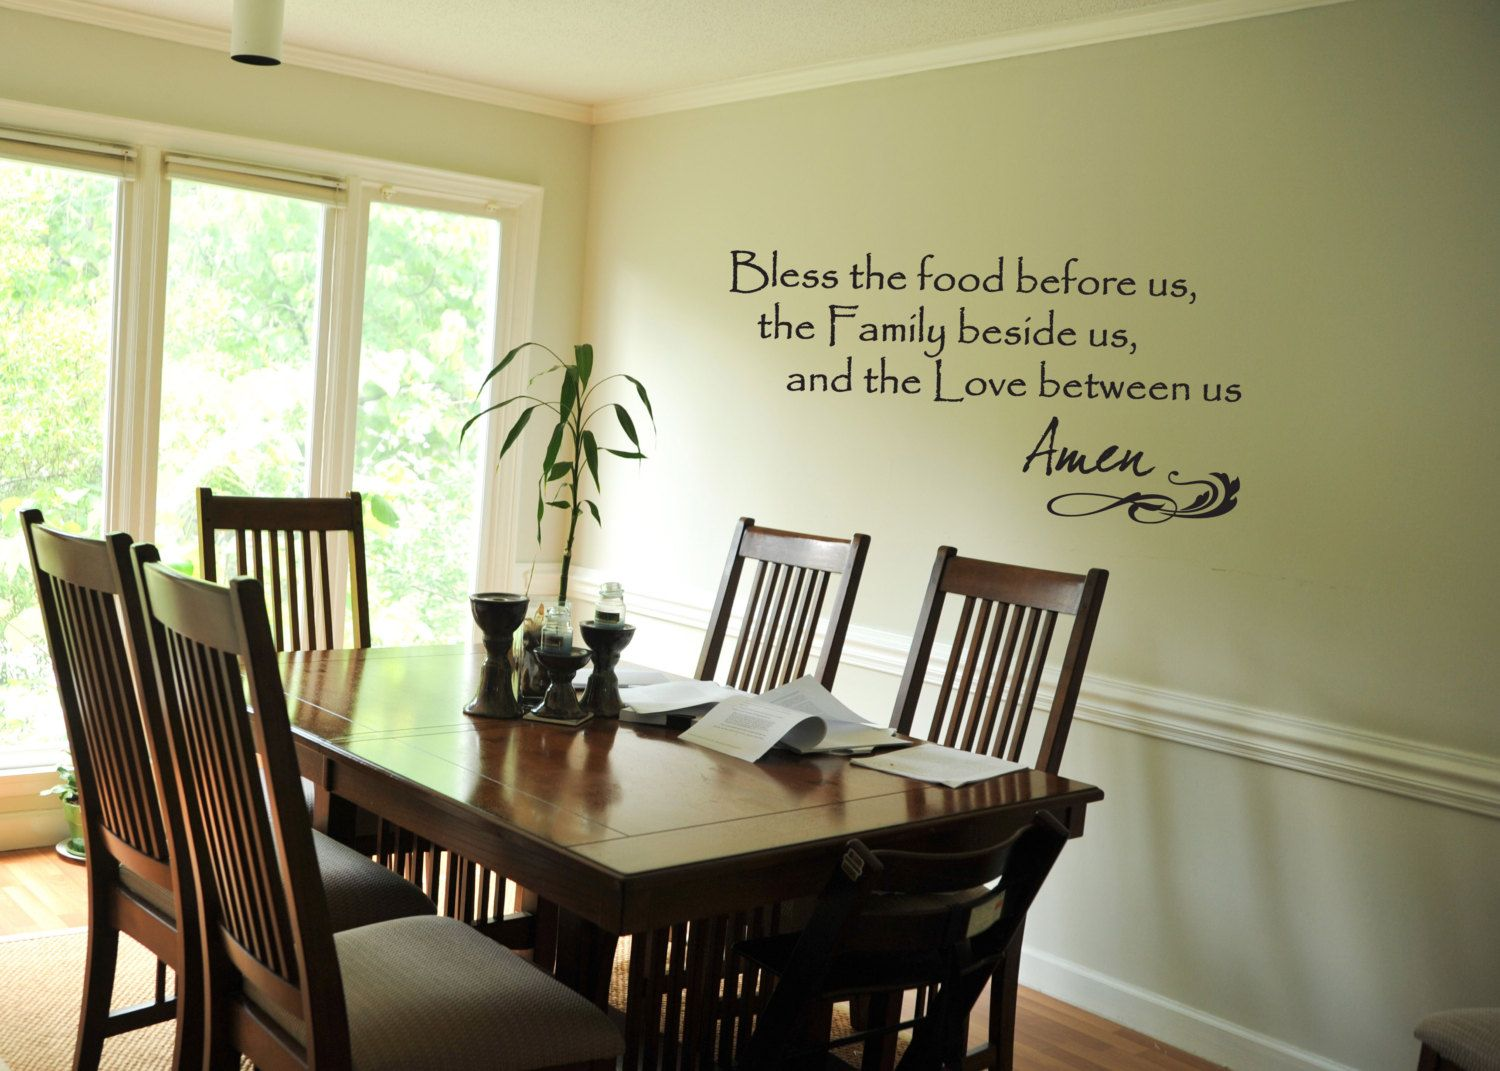 Wall Decal Bless The Food Before Us Quote Prayer Dining Room